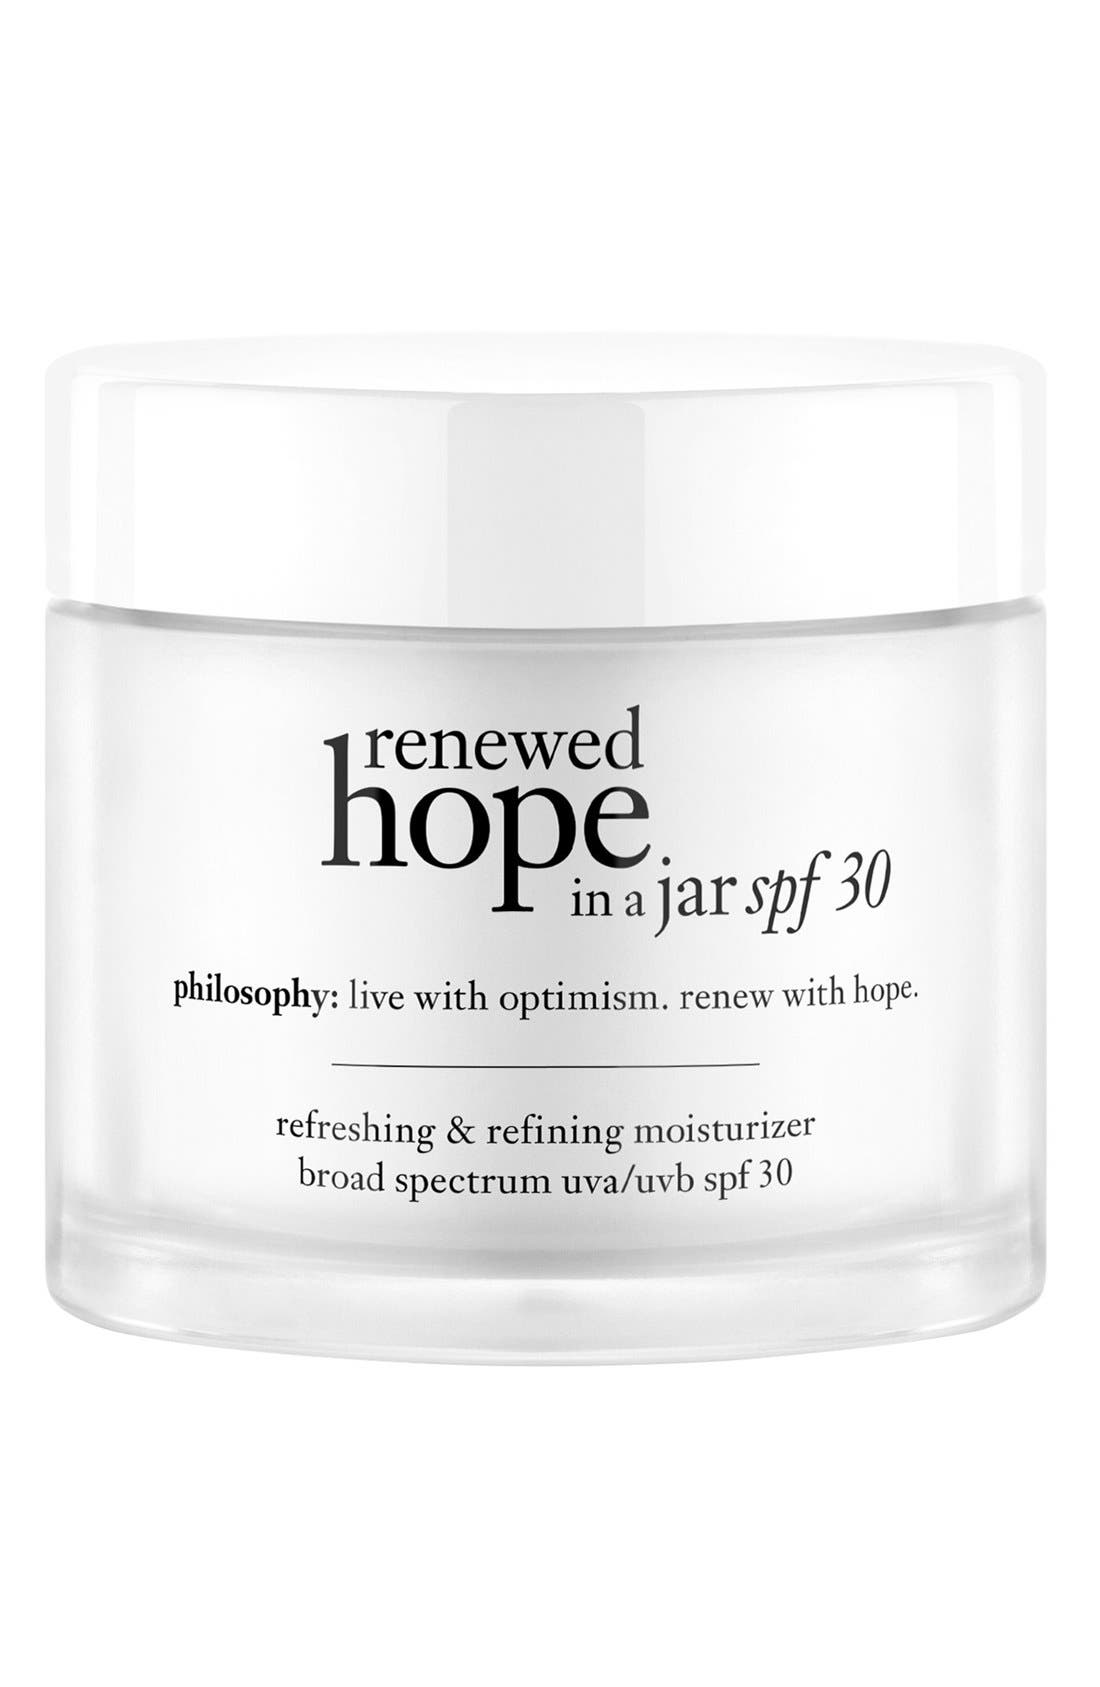 renewed hope in a jar refreshing & refining moisturizer SPF 30,                             Main thumbnail 1, color,                             NO COLOR